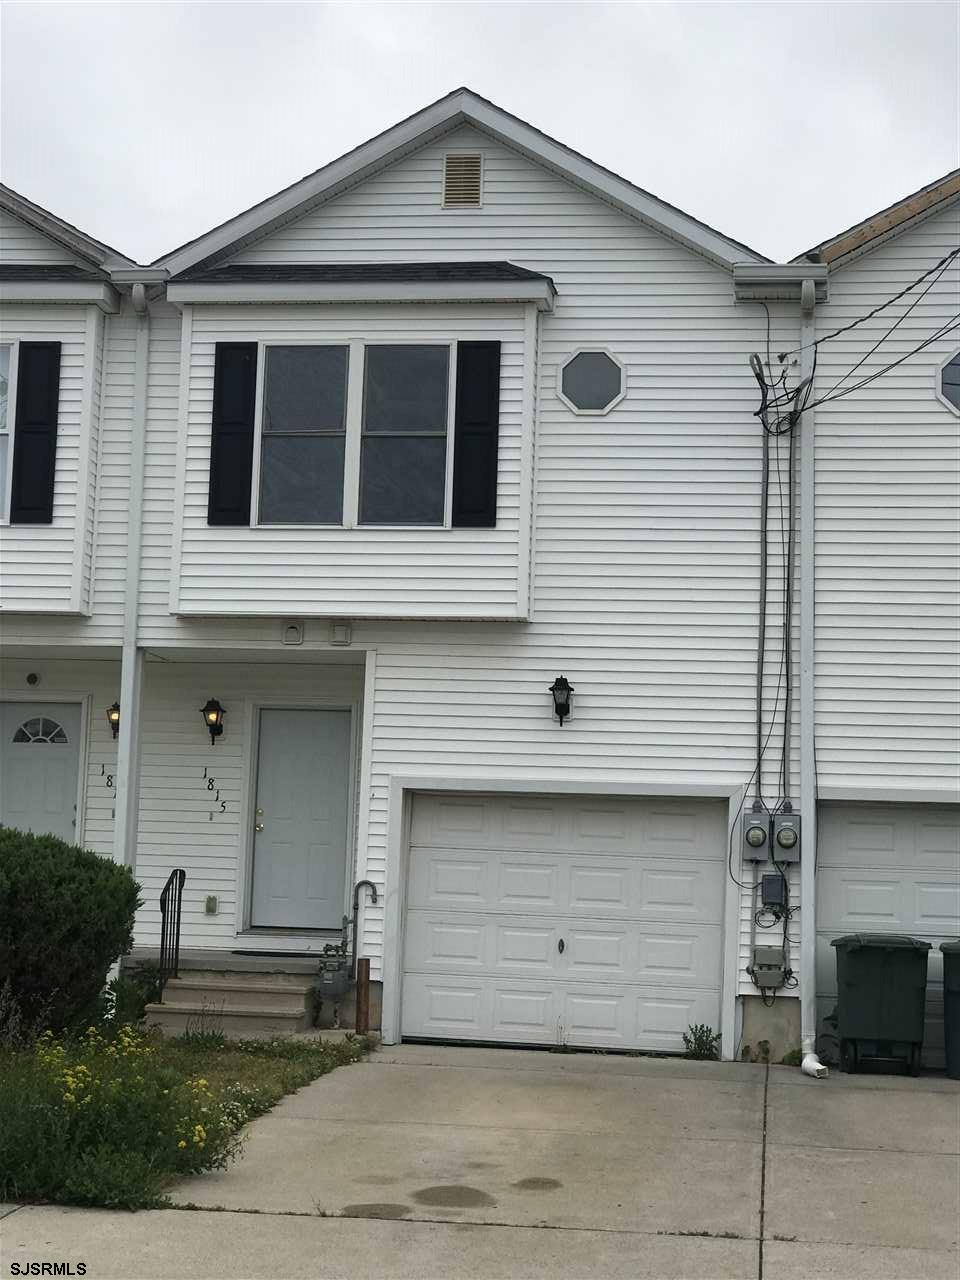 Affordable townhome discounted for income qualified First Time Home Buyers. New flooring & appliance